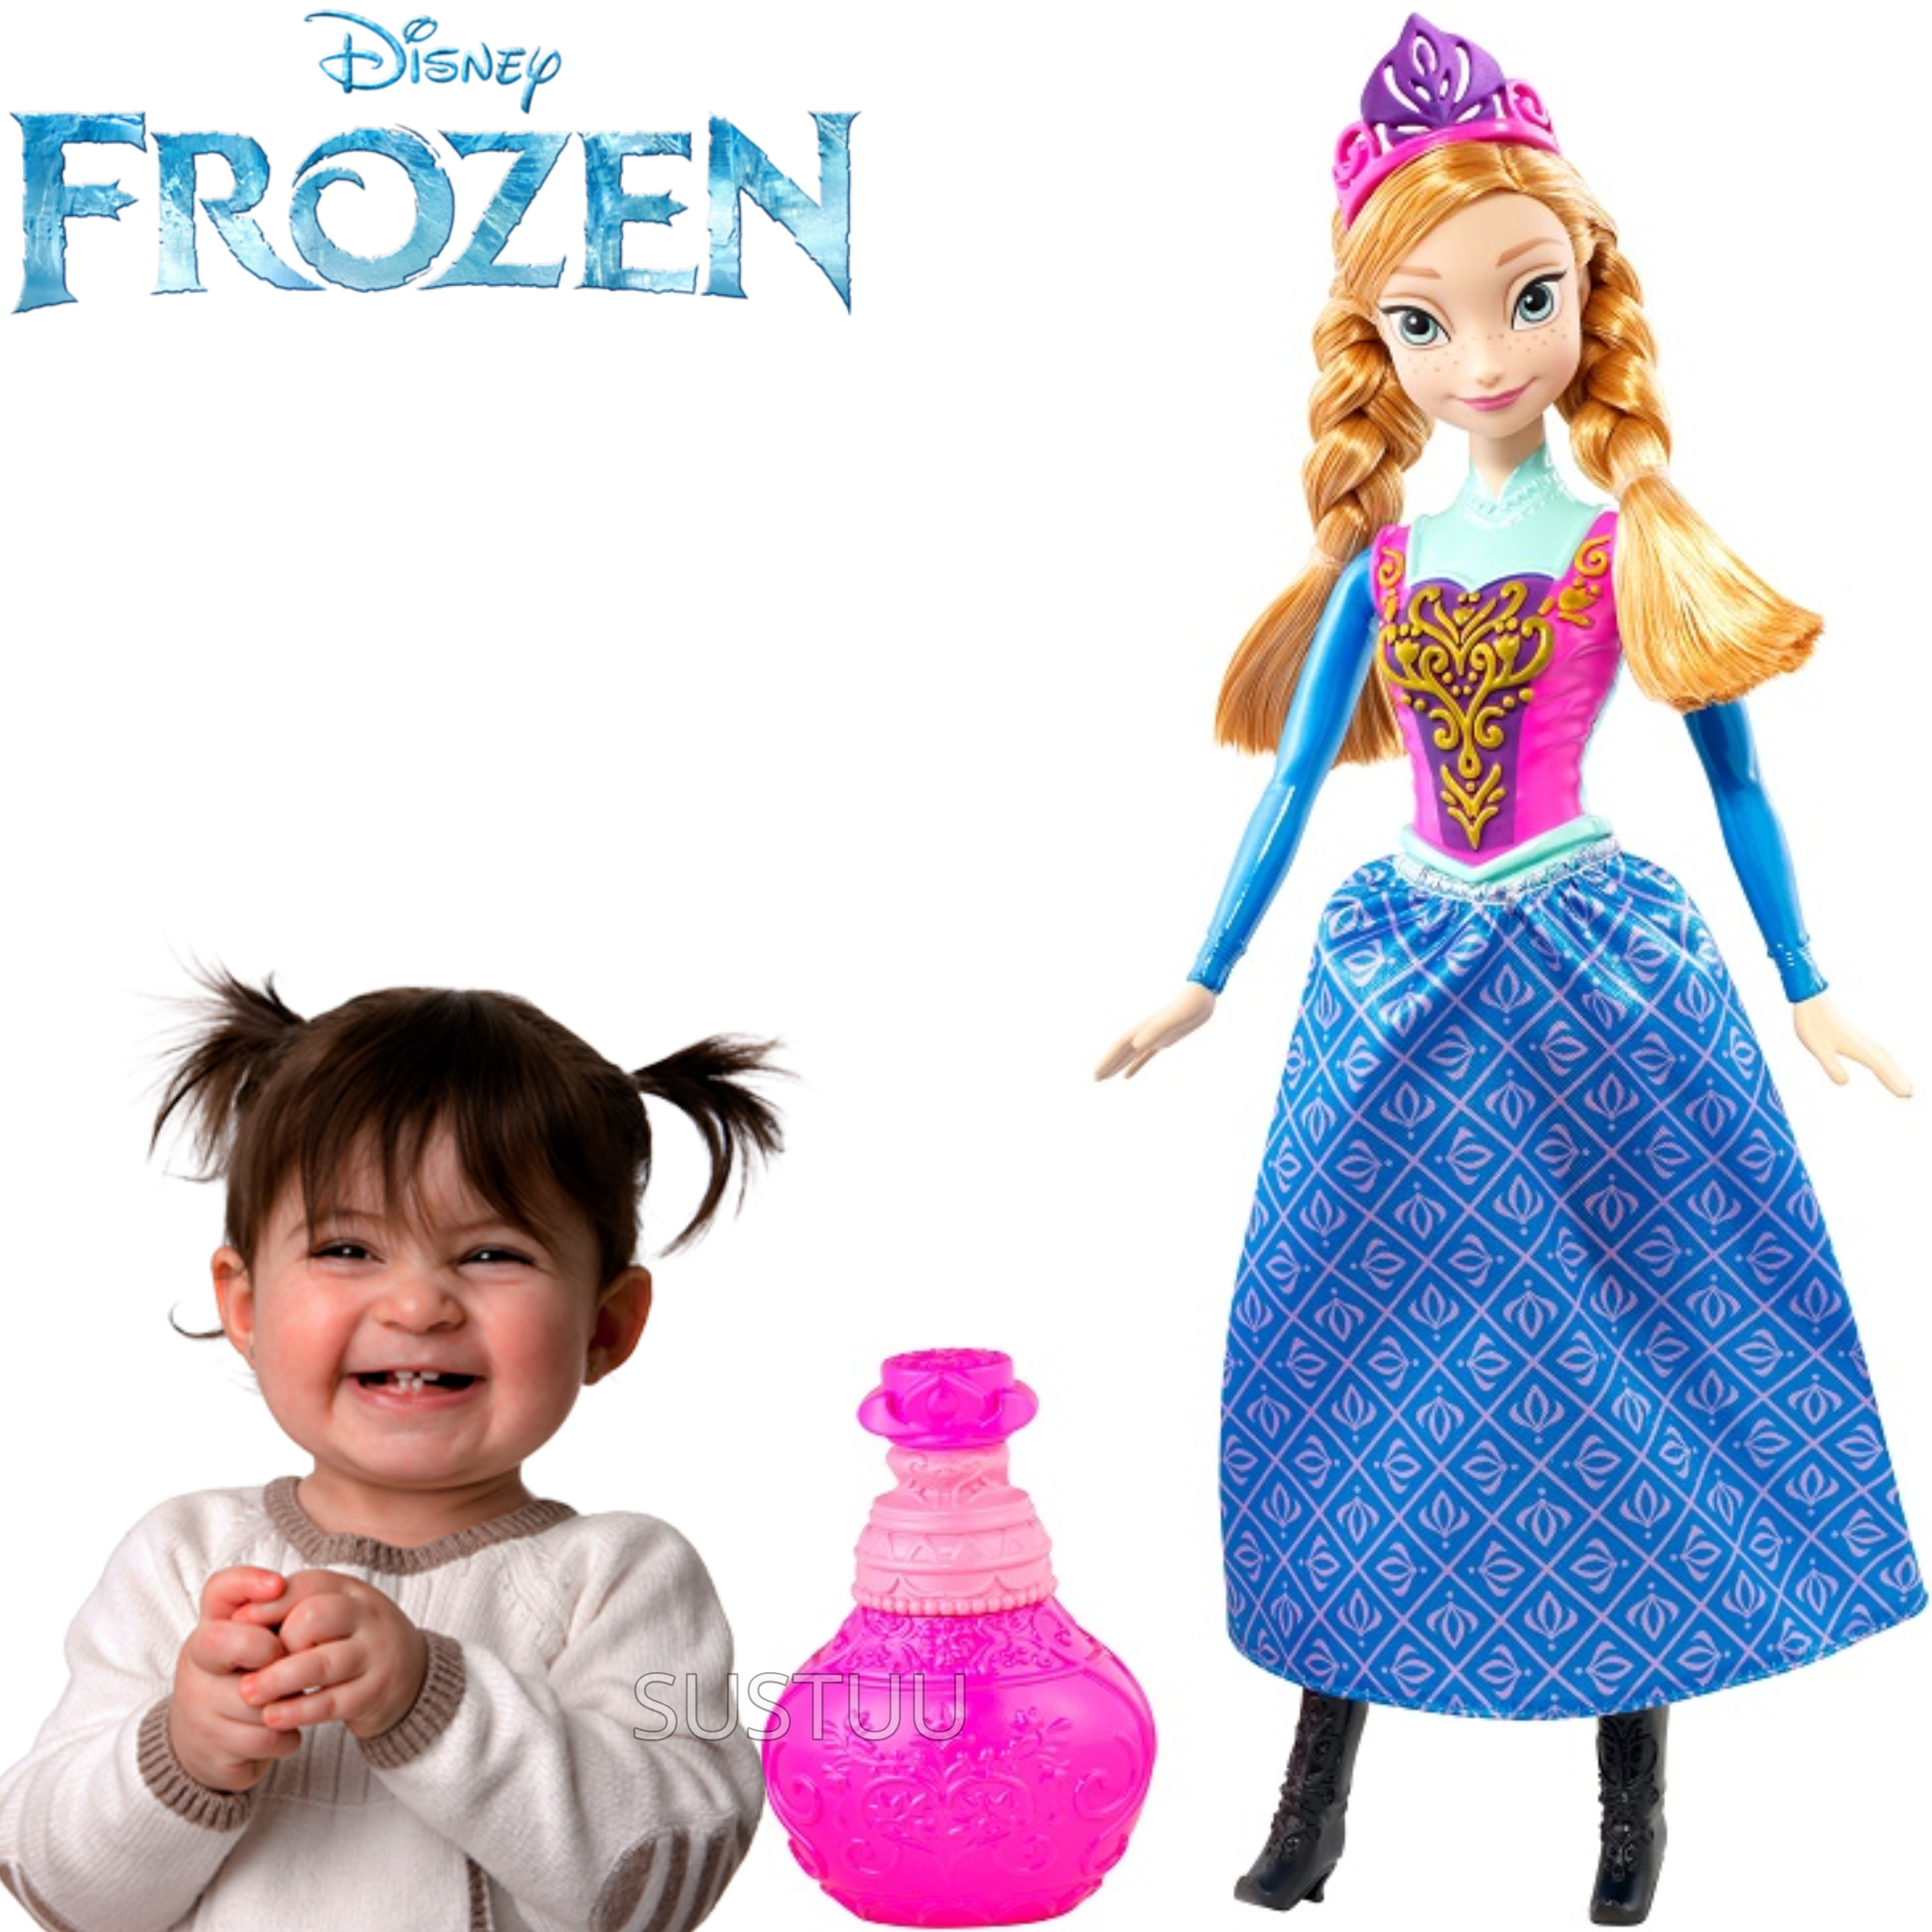 Disney Frozen Royal Colour Changing Doll Anna | Girls Favourite Princess | 3 Years+